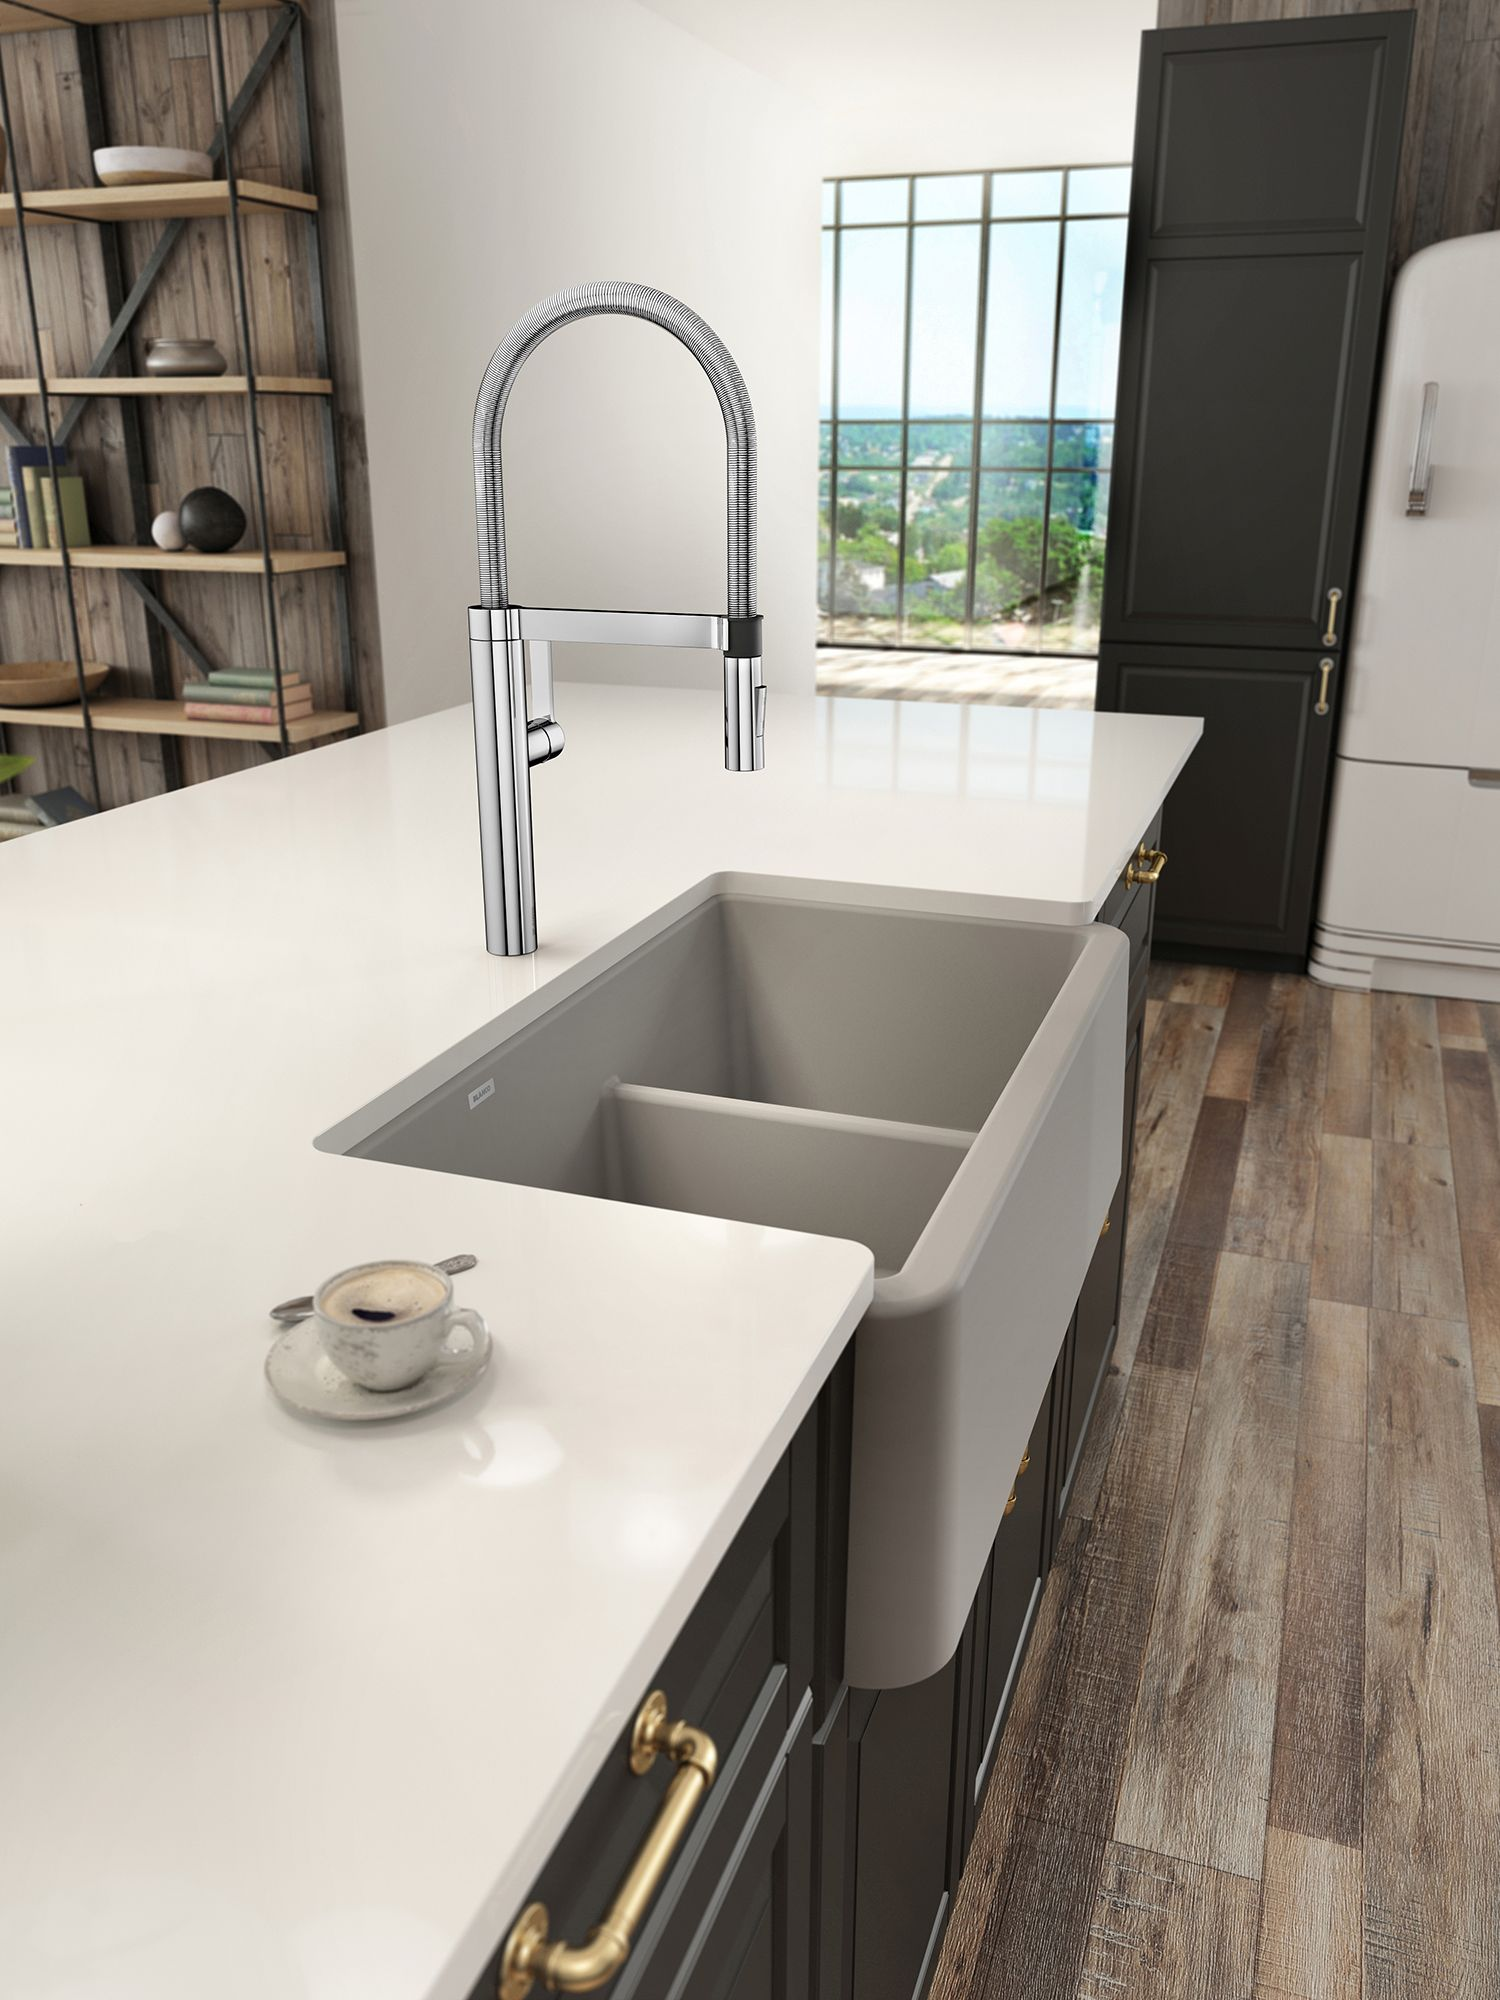 blanco gray sink on white island with teacup